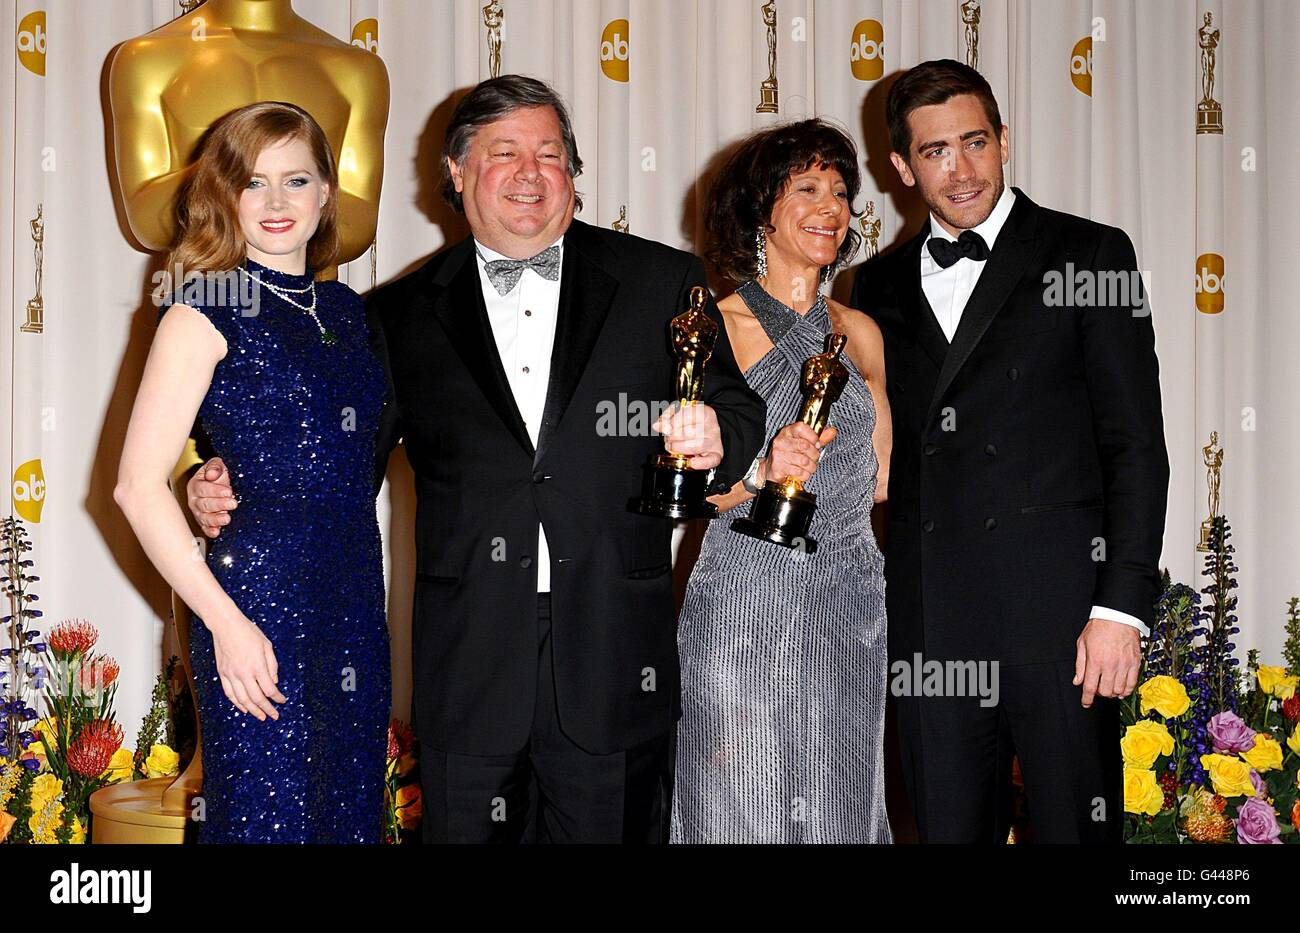 The 83rd Academy Awards - Press Room - Los Angeles - Stock Image